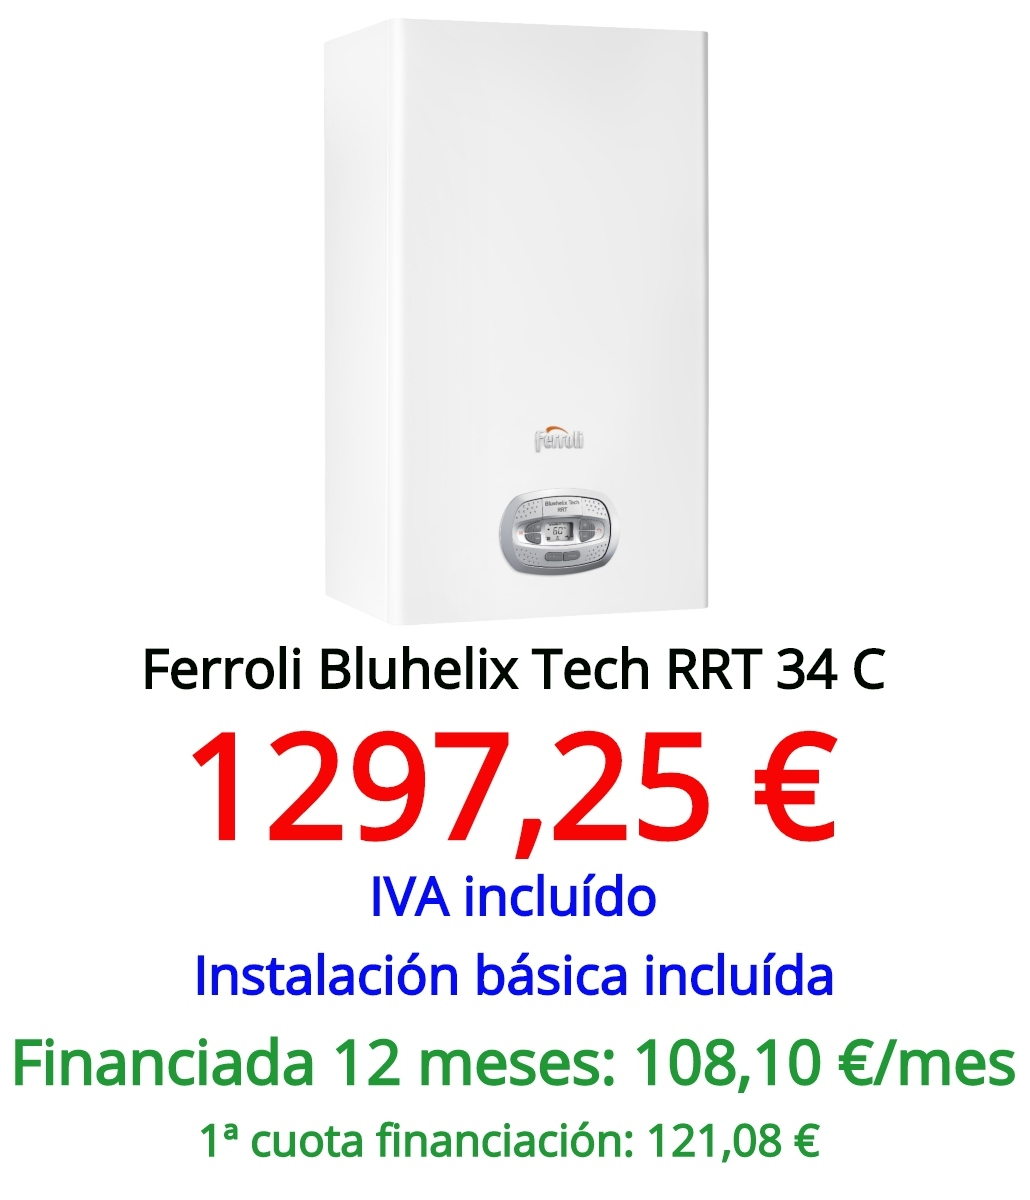 Ferroli Bluehelix Tech RRT 34